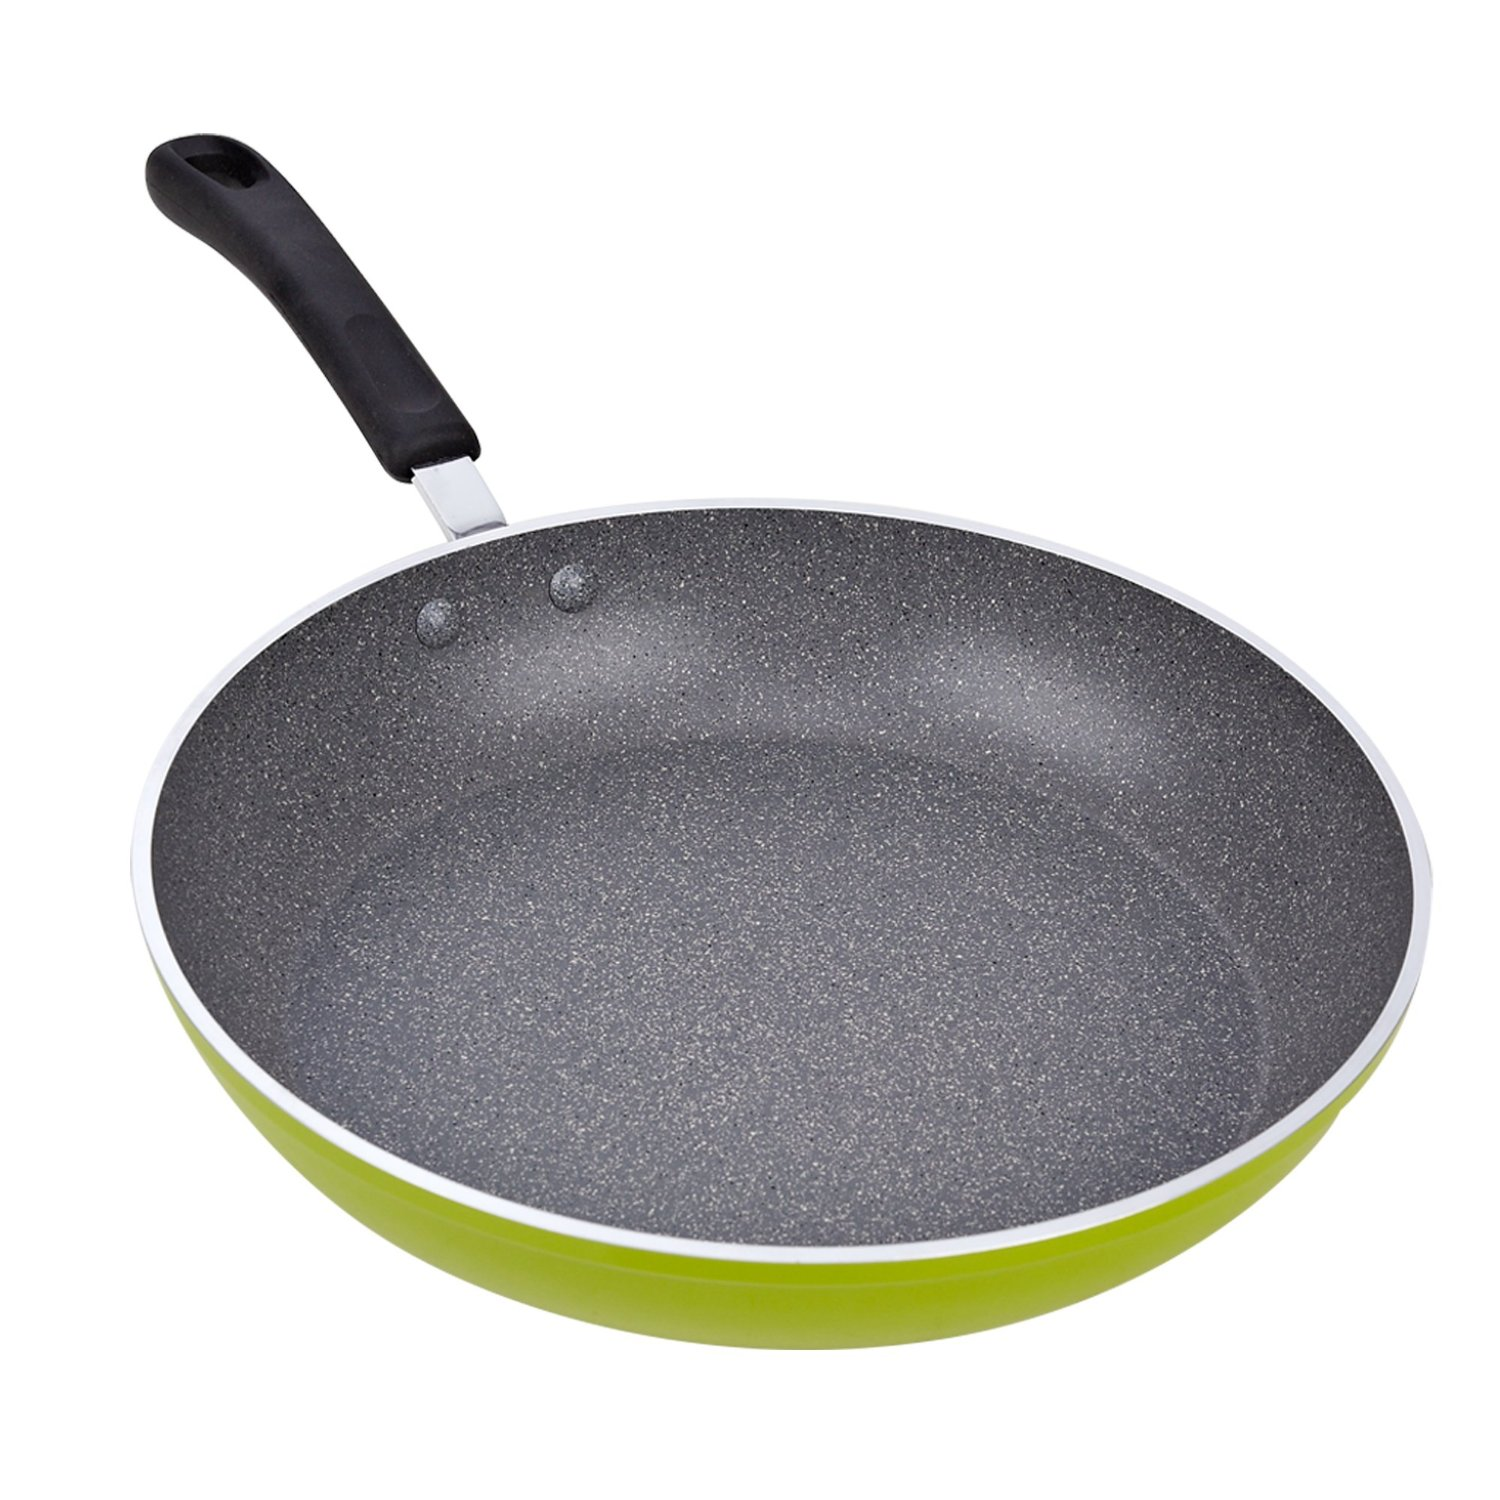 Cook N Home 12-Inch Frying Pan with Non-Stick Coating